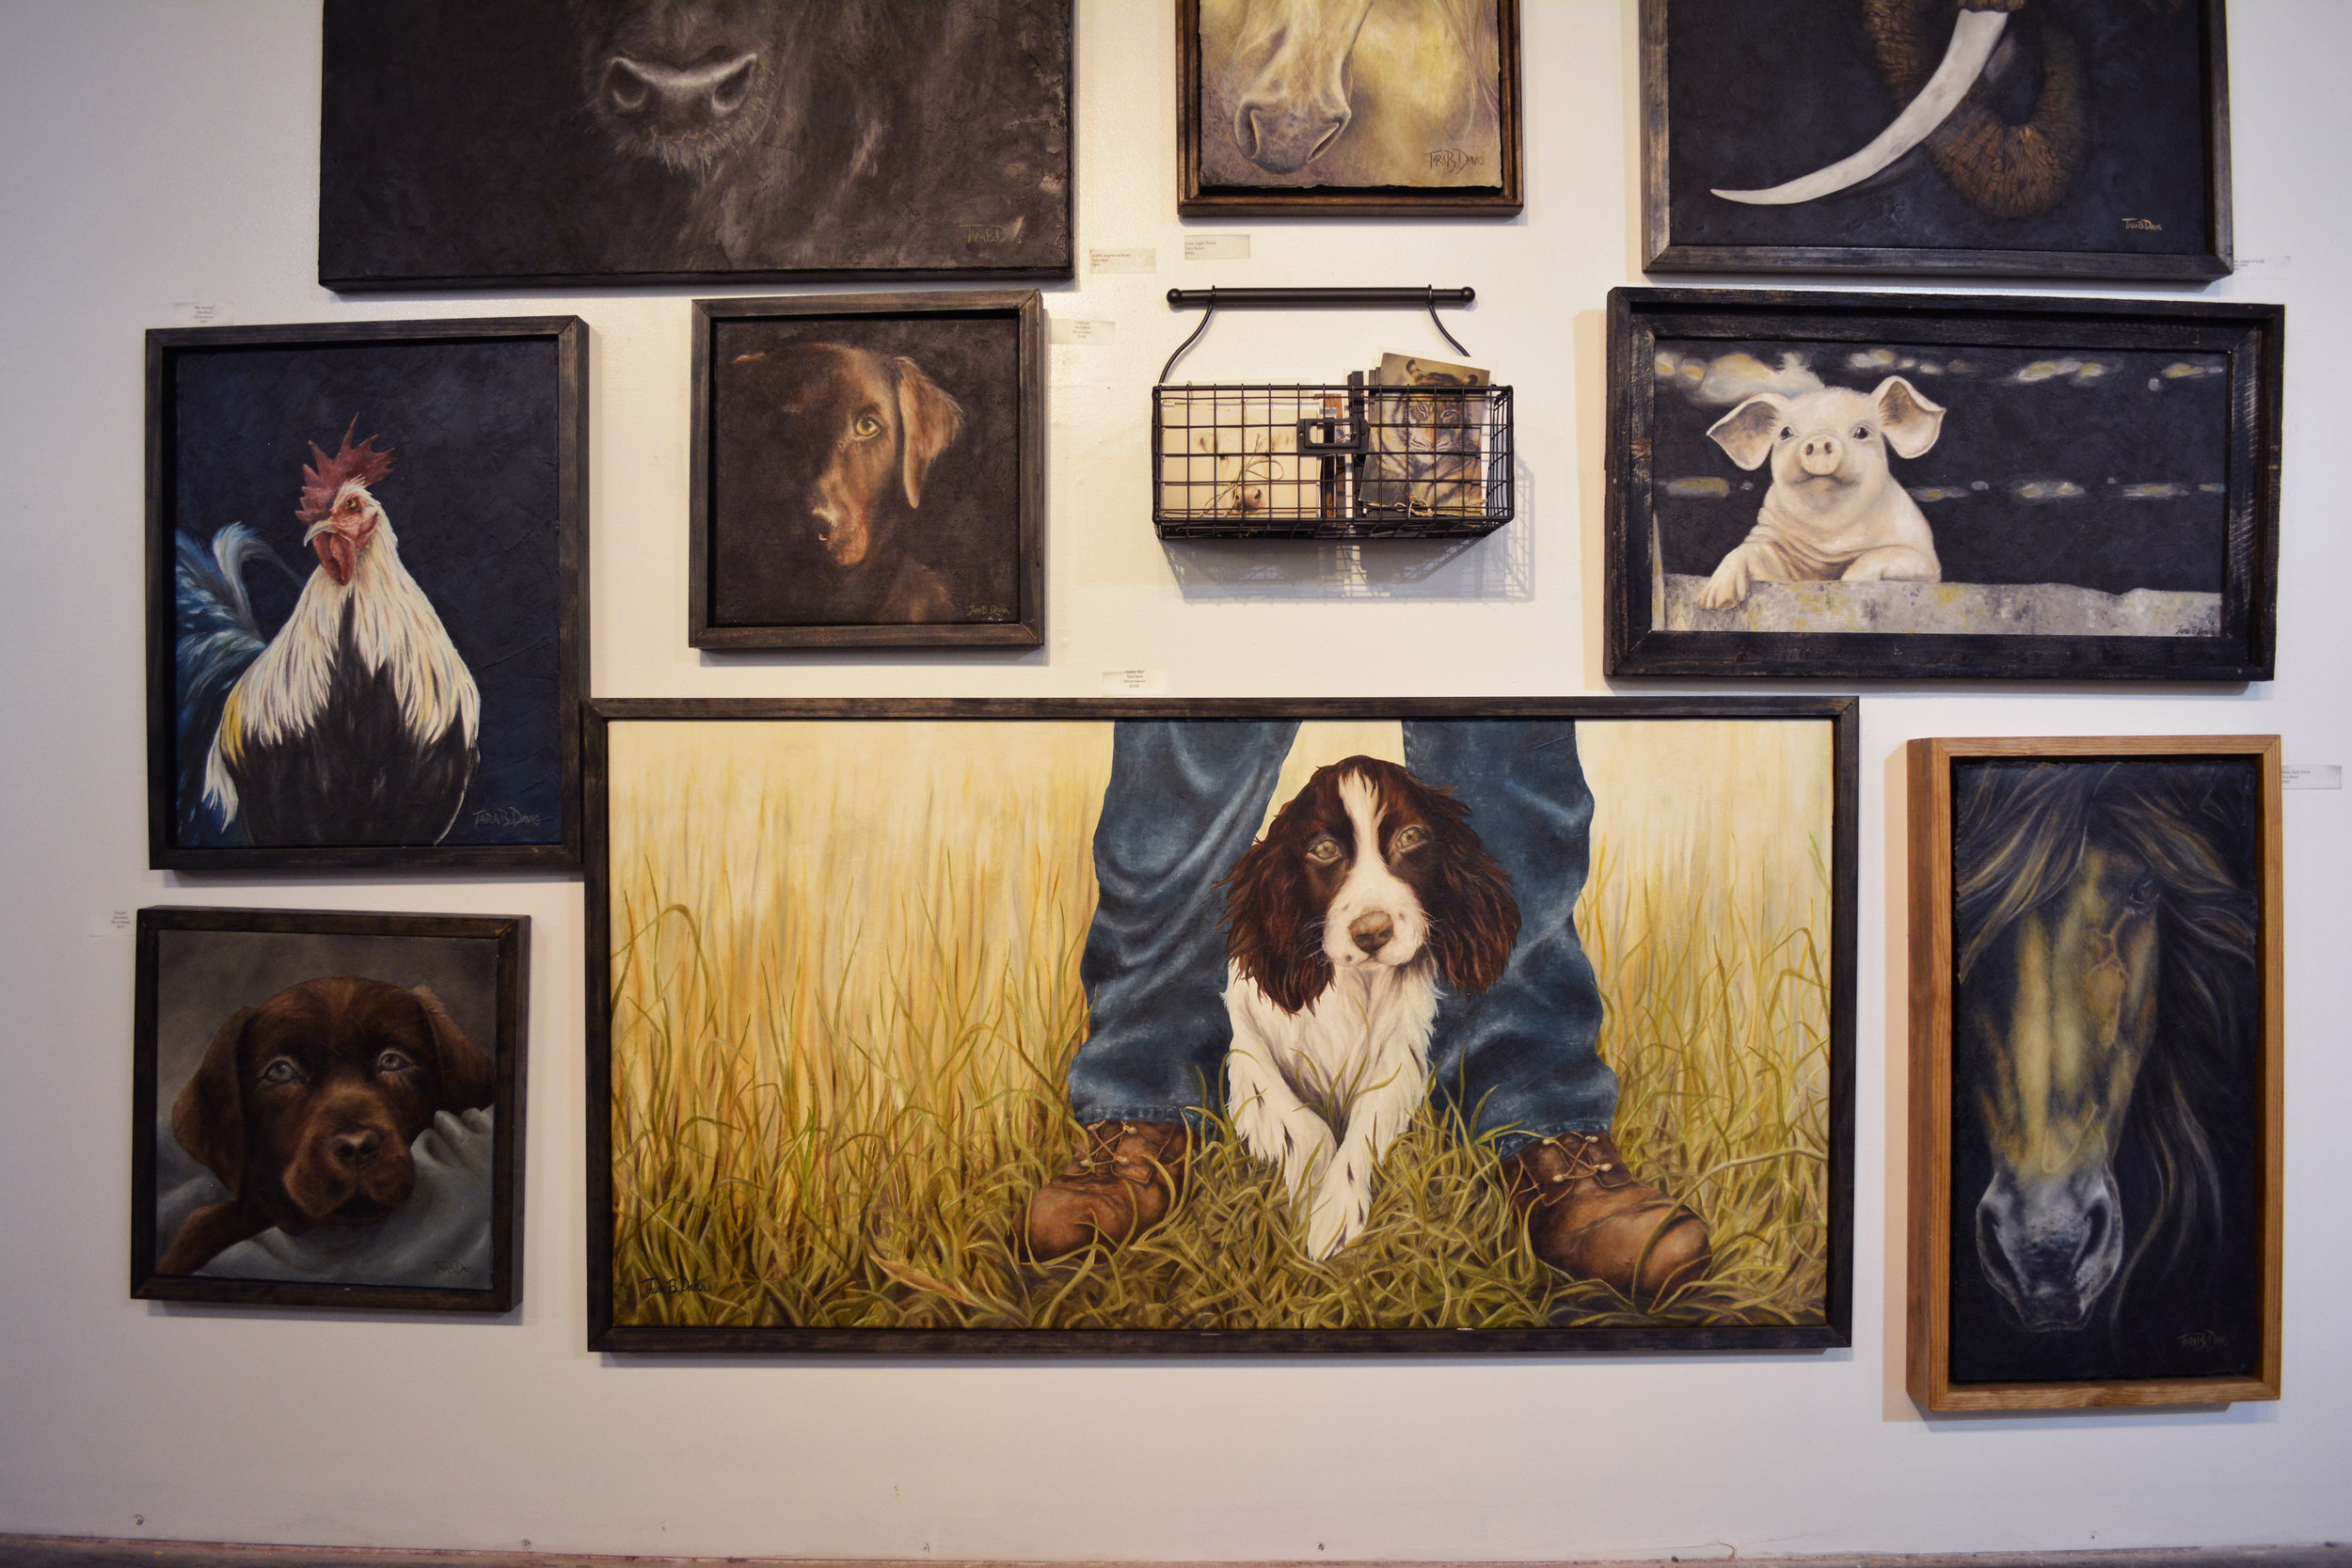 Tara Davis - Rustic farm-animals and pets captured in paintings that have a glowing presence, oil on canvas.